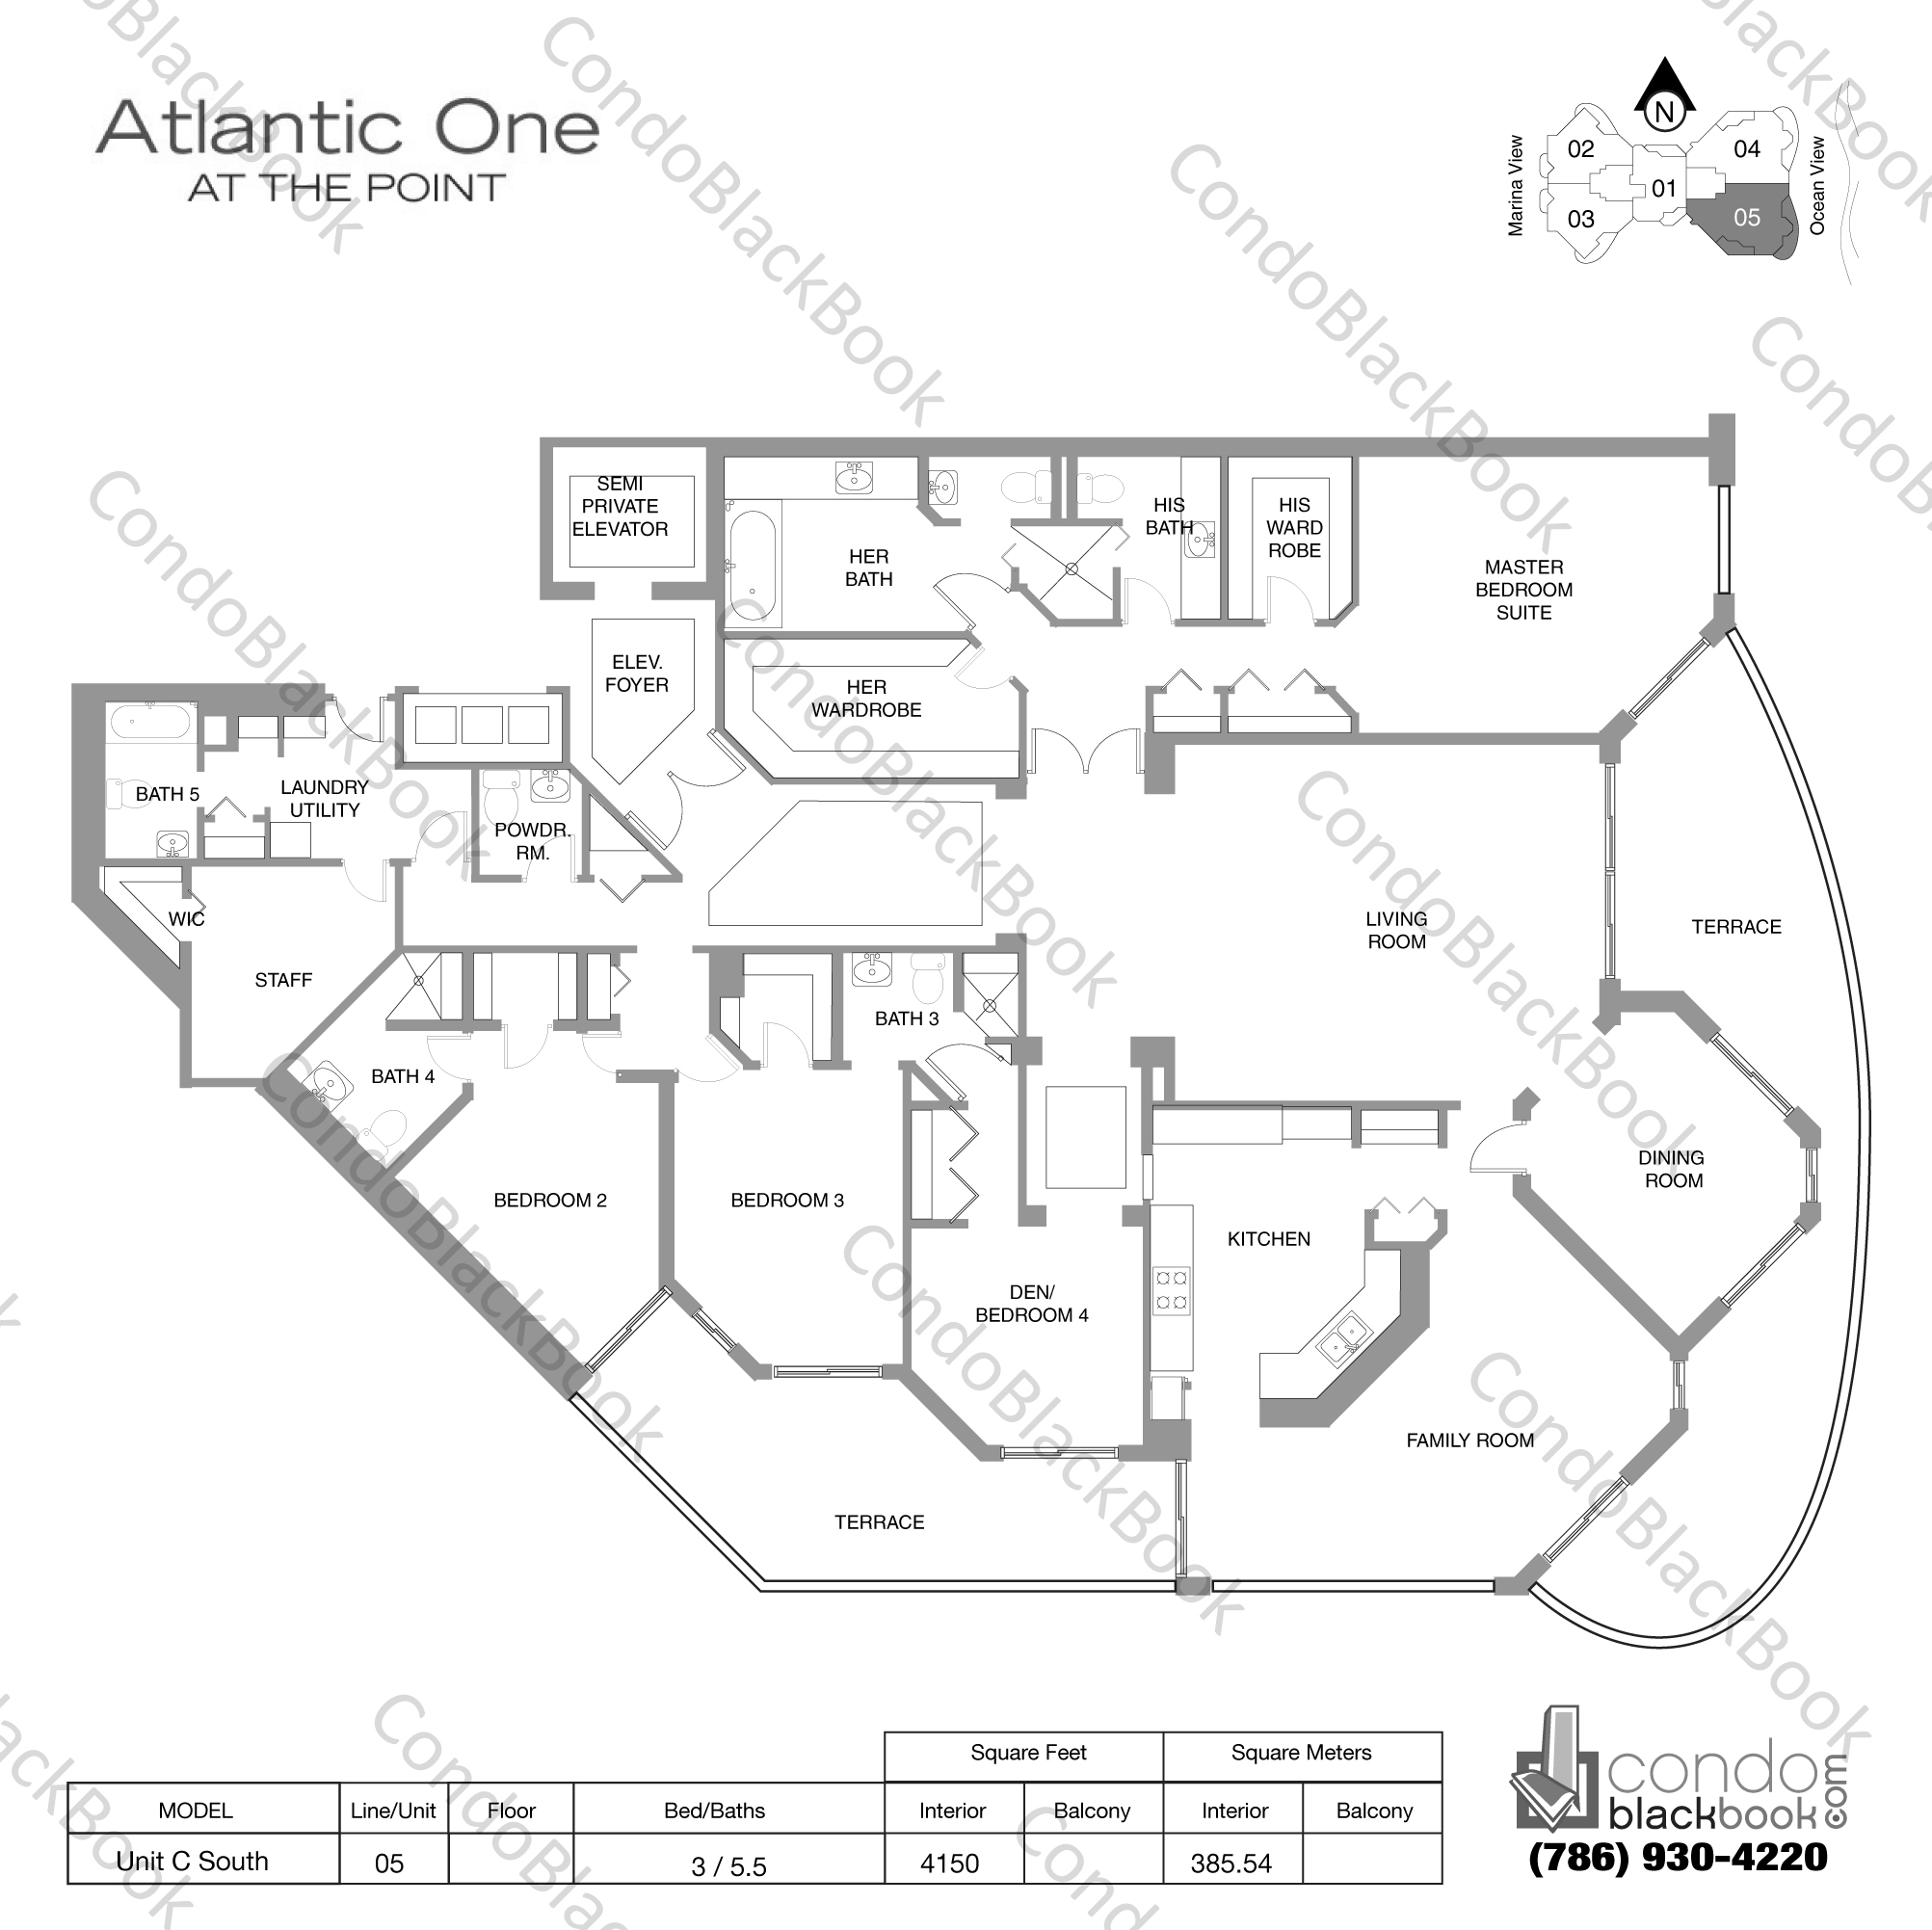 Floor plan for Atlantic I at the Point Aventura, model Unit C South, line 05, 3 / 5.5 bedrooms, 4150 sq ft